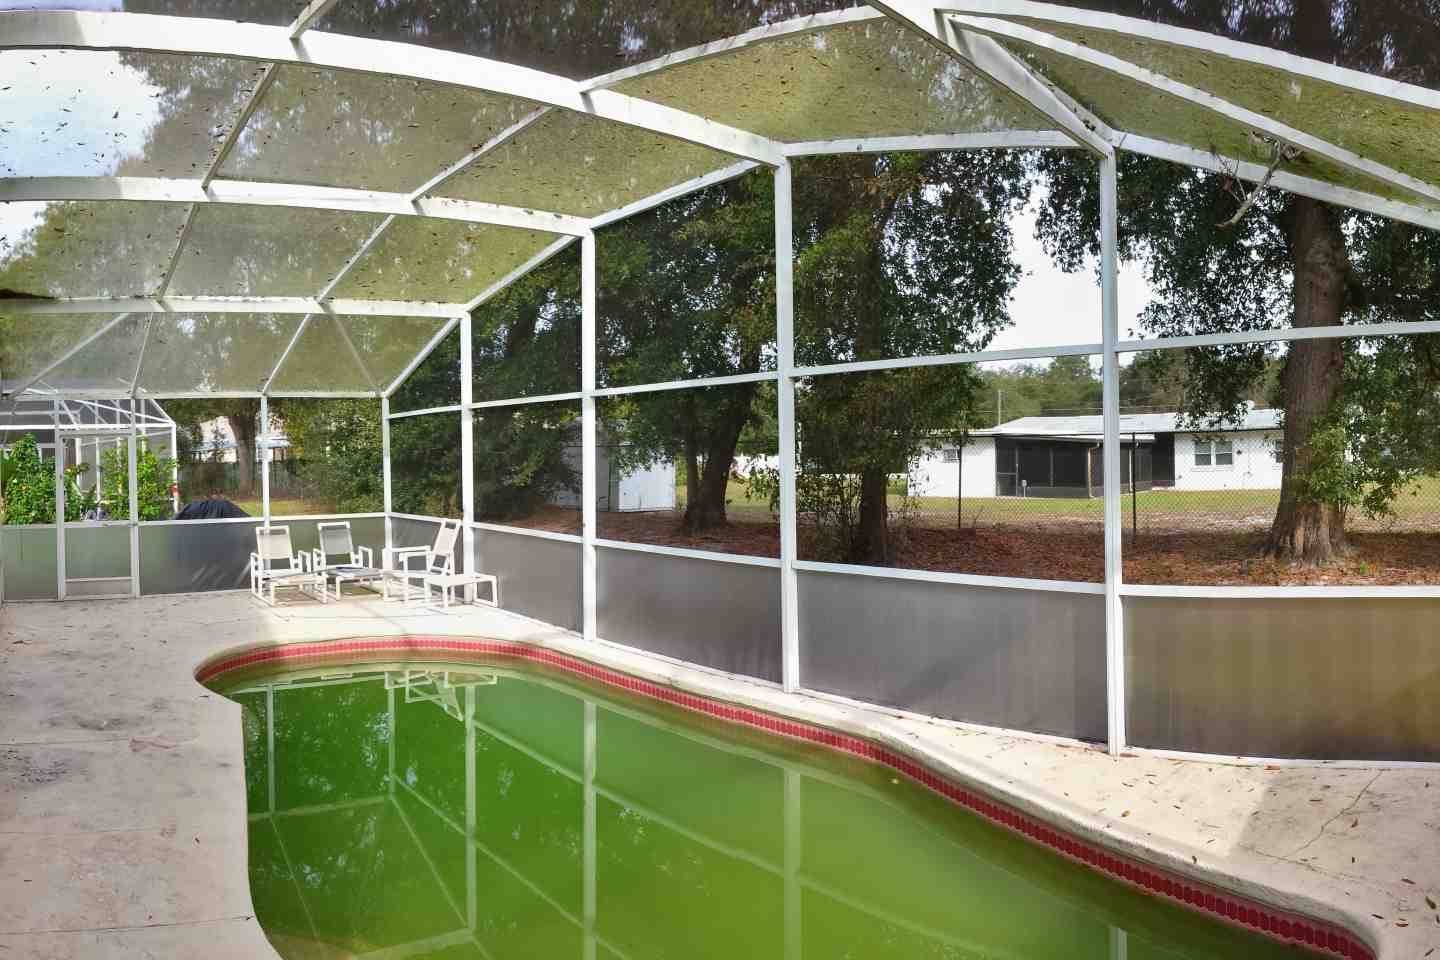 05-pool-enclosure-florida-glass-before-re-screen.jpg